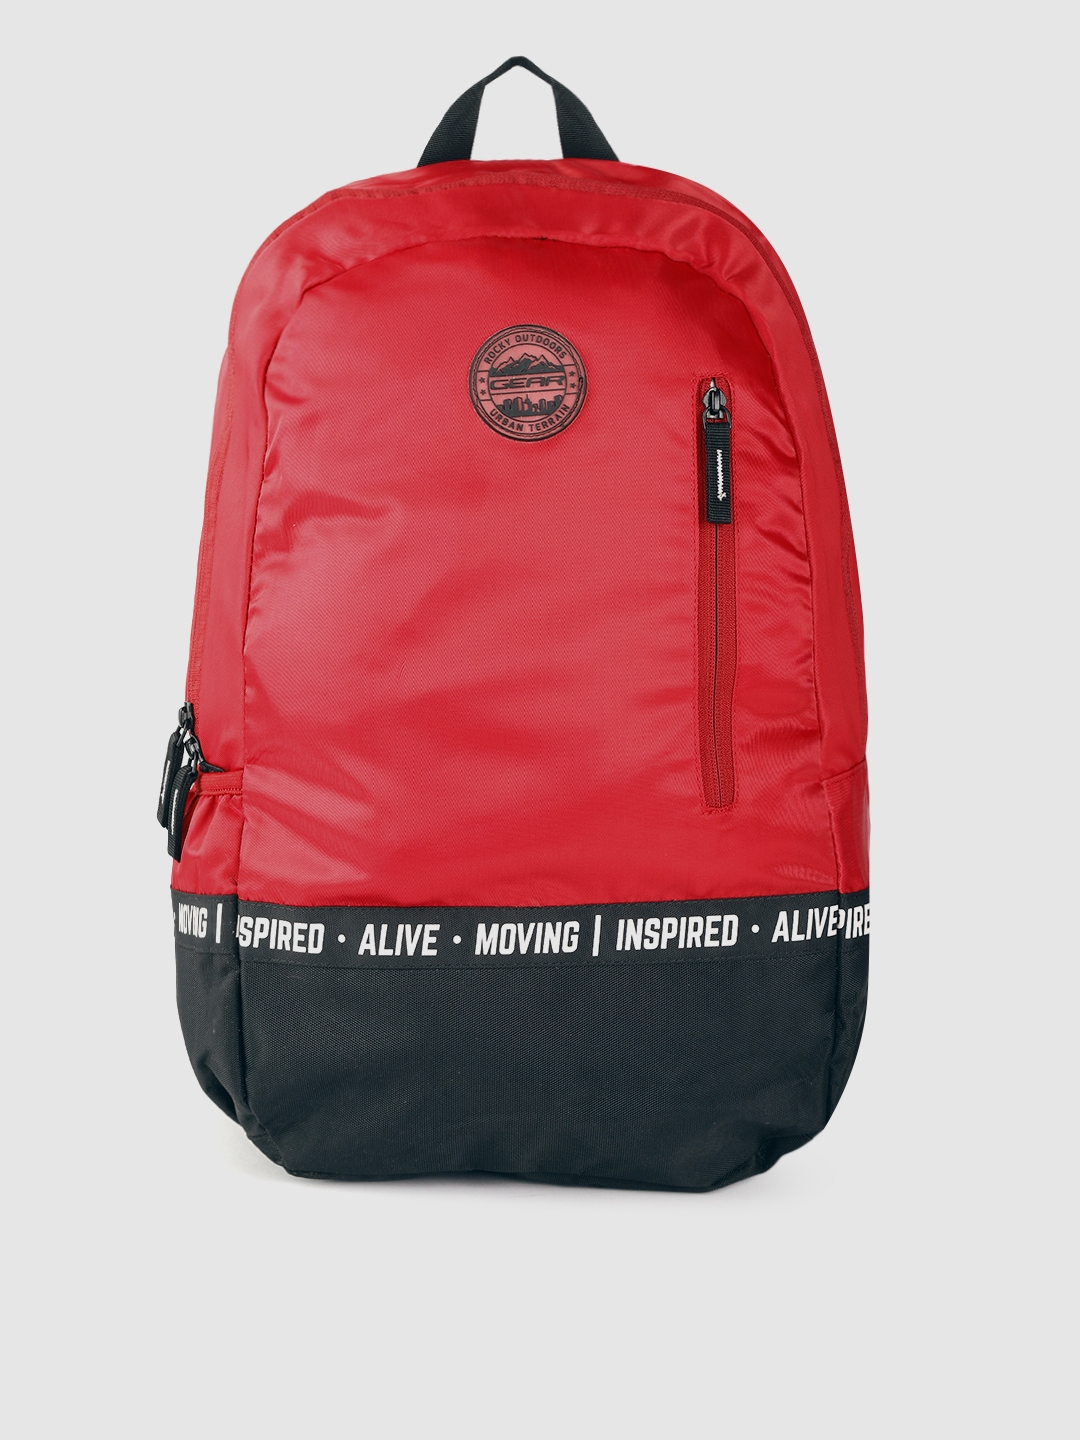 Gear Unisex Red   Black Colourblocked 18 Inch Laptop Backpack